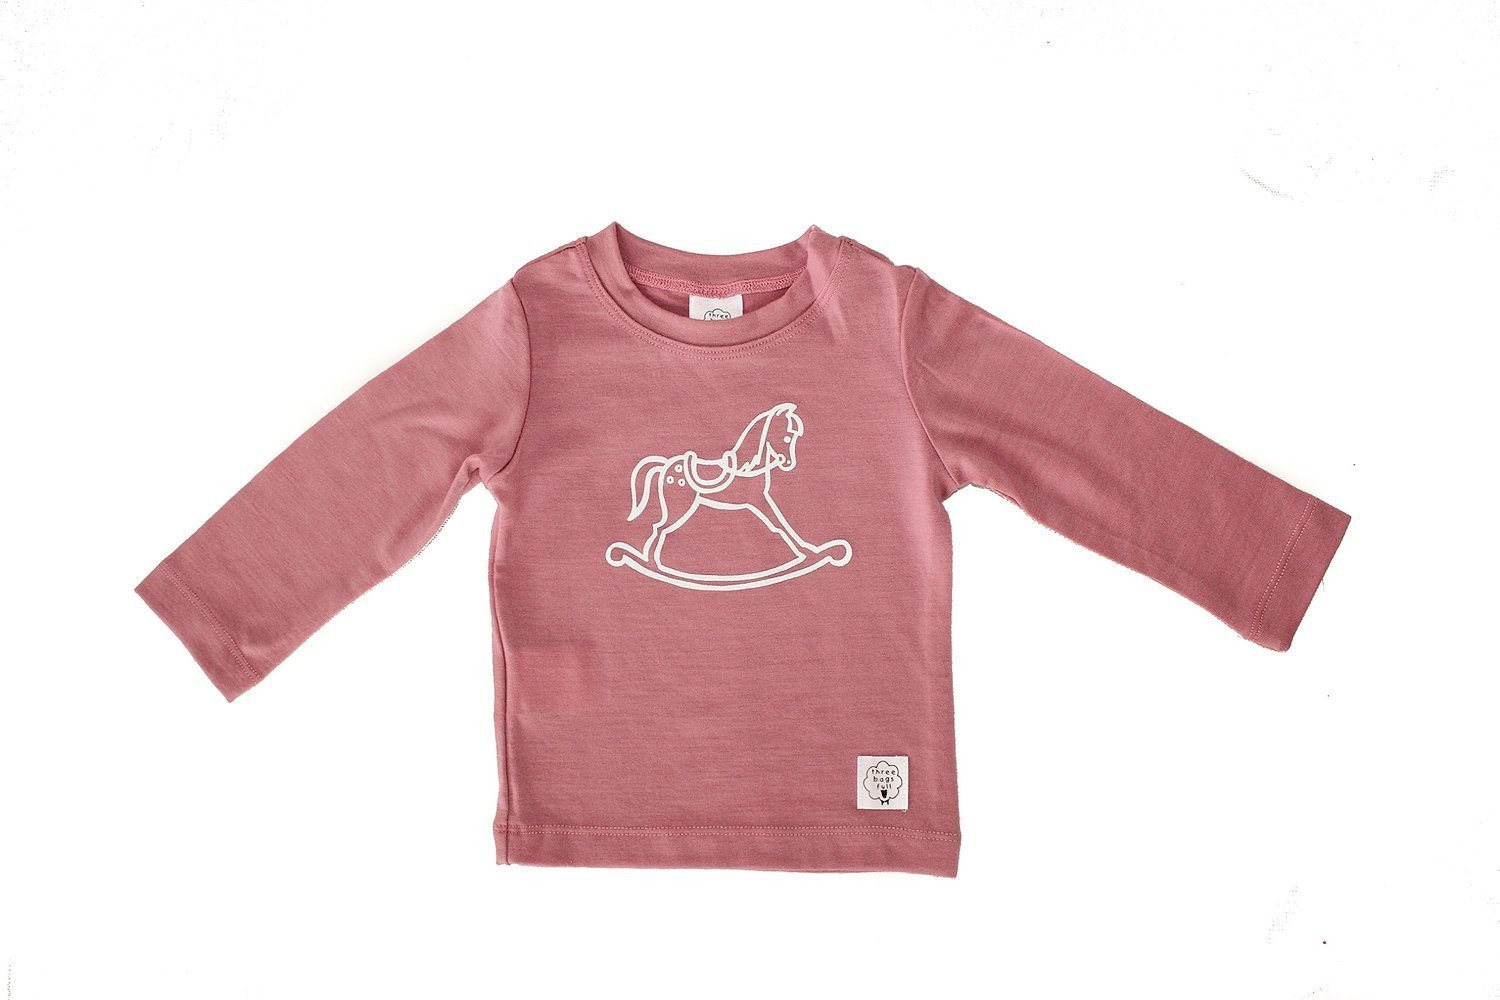 0-3 Months / Rose Three Bags Full Baby Rocking Horse Shirt - Naked Baby Eco Boutique